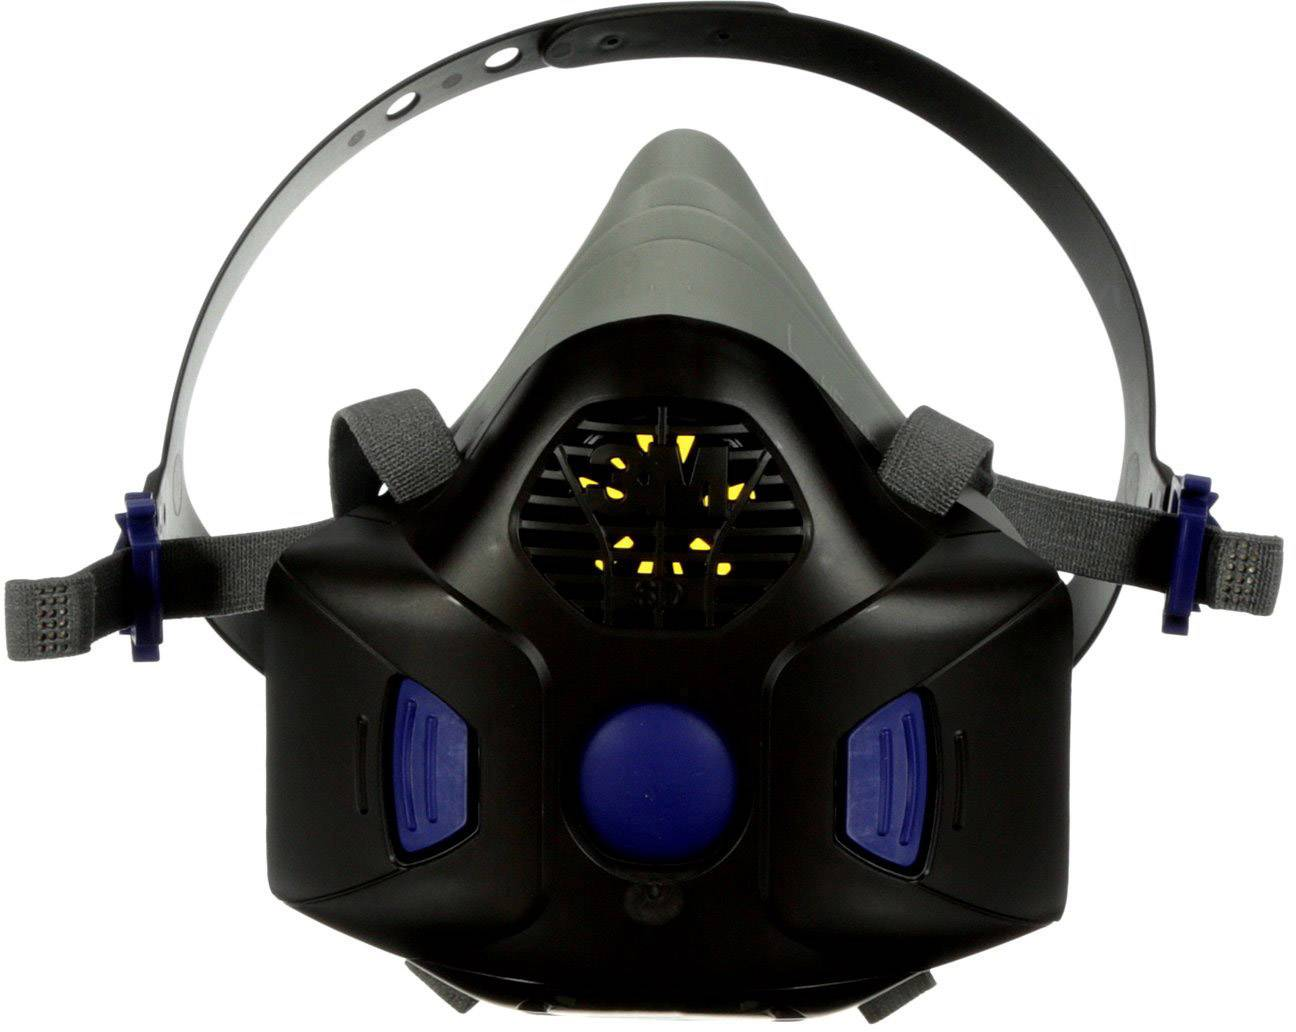 3m mask with respirator